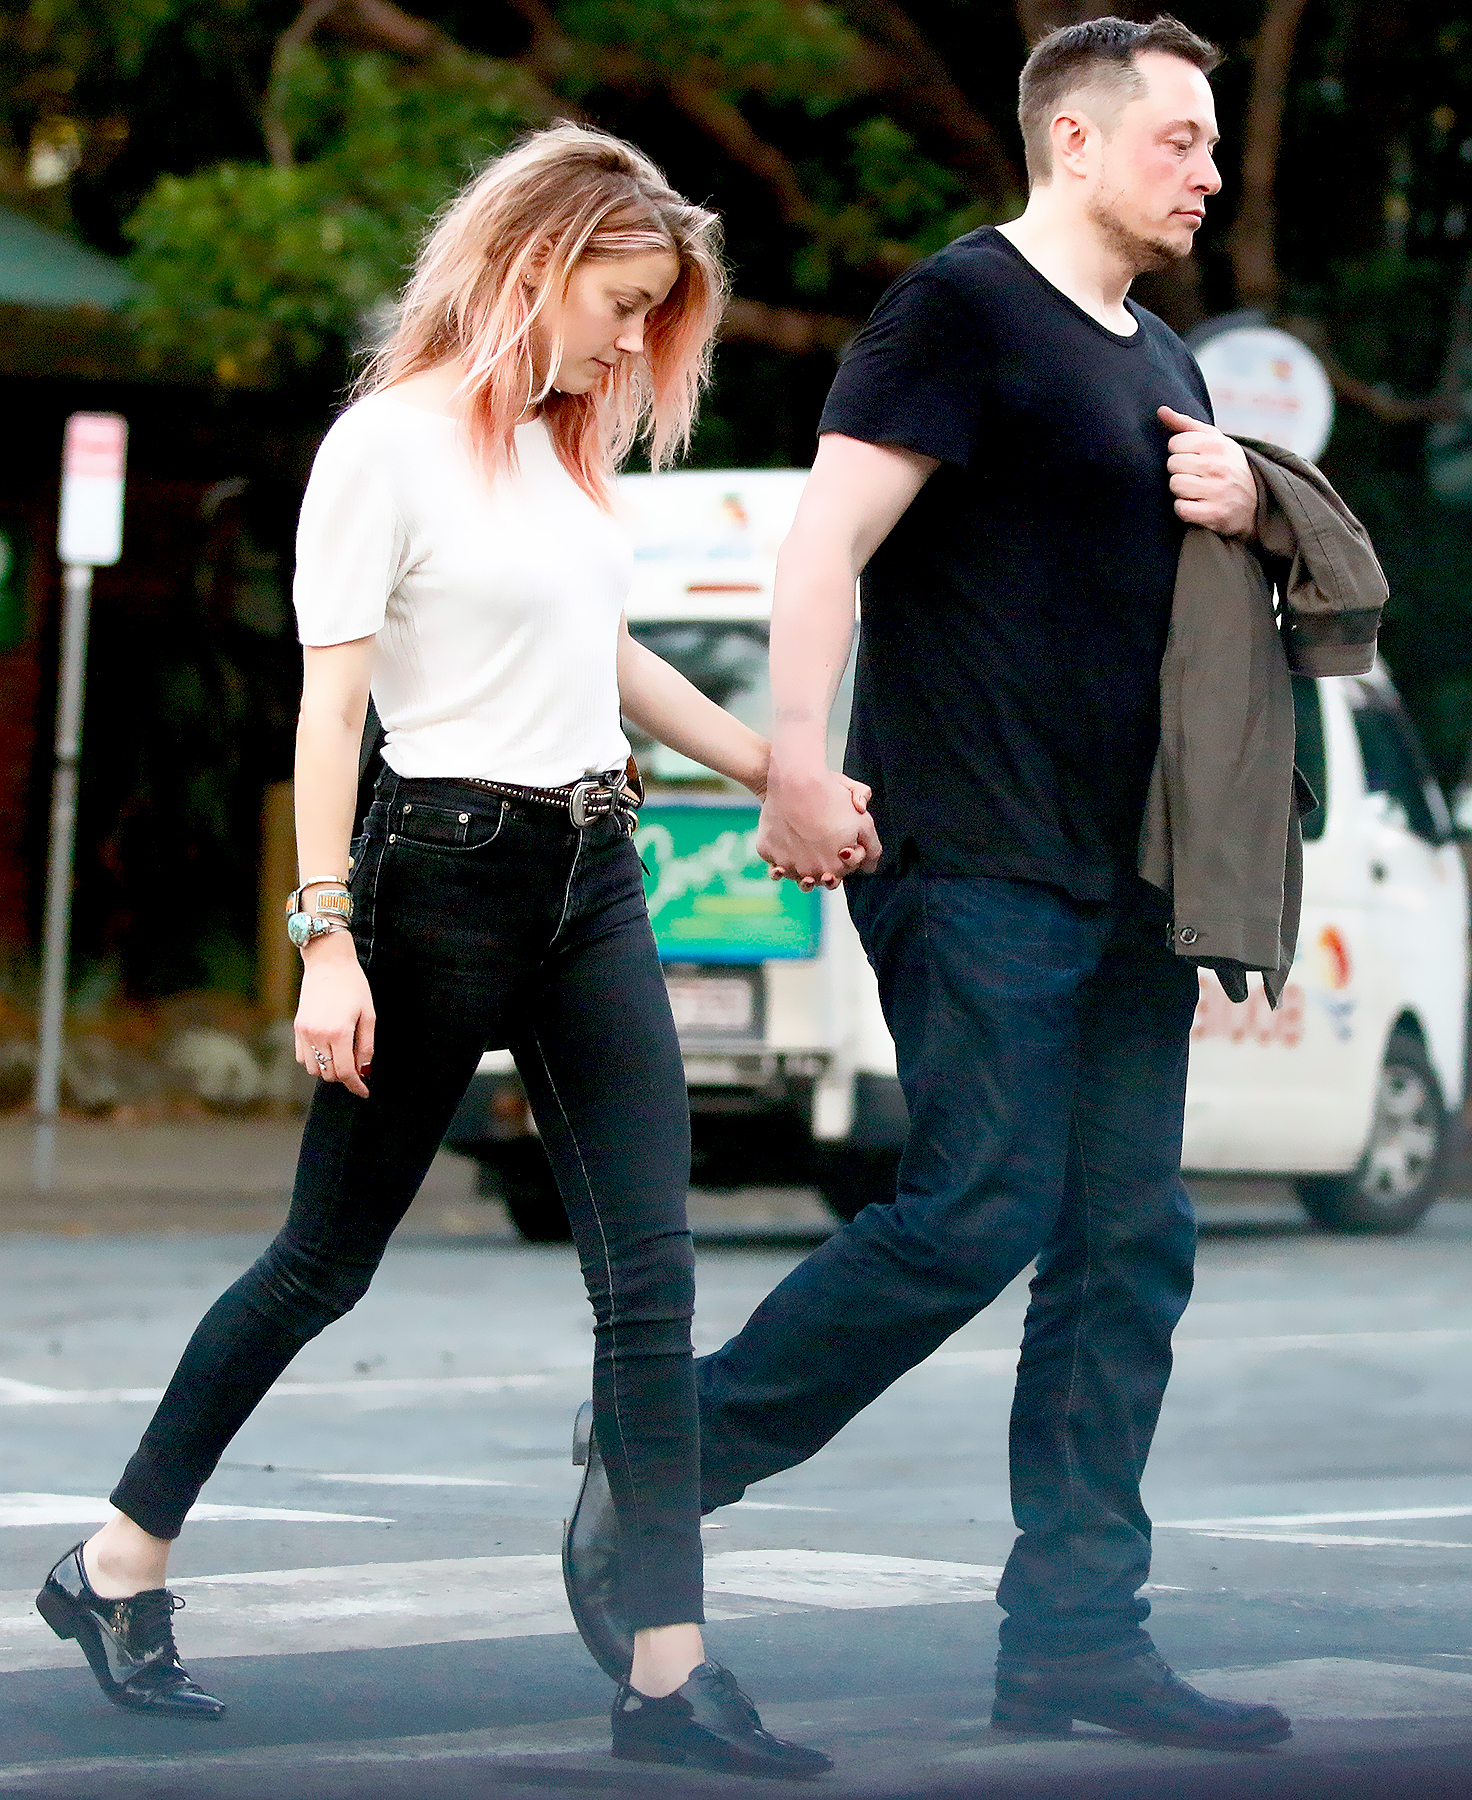 Amber Heard has a day out on the Gold Coast with boyfriend, billionaire and Tesla boss, Elon Musk on April 23, 2017.